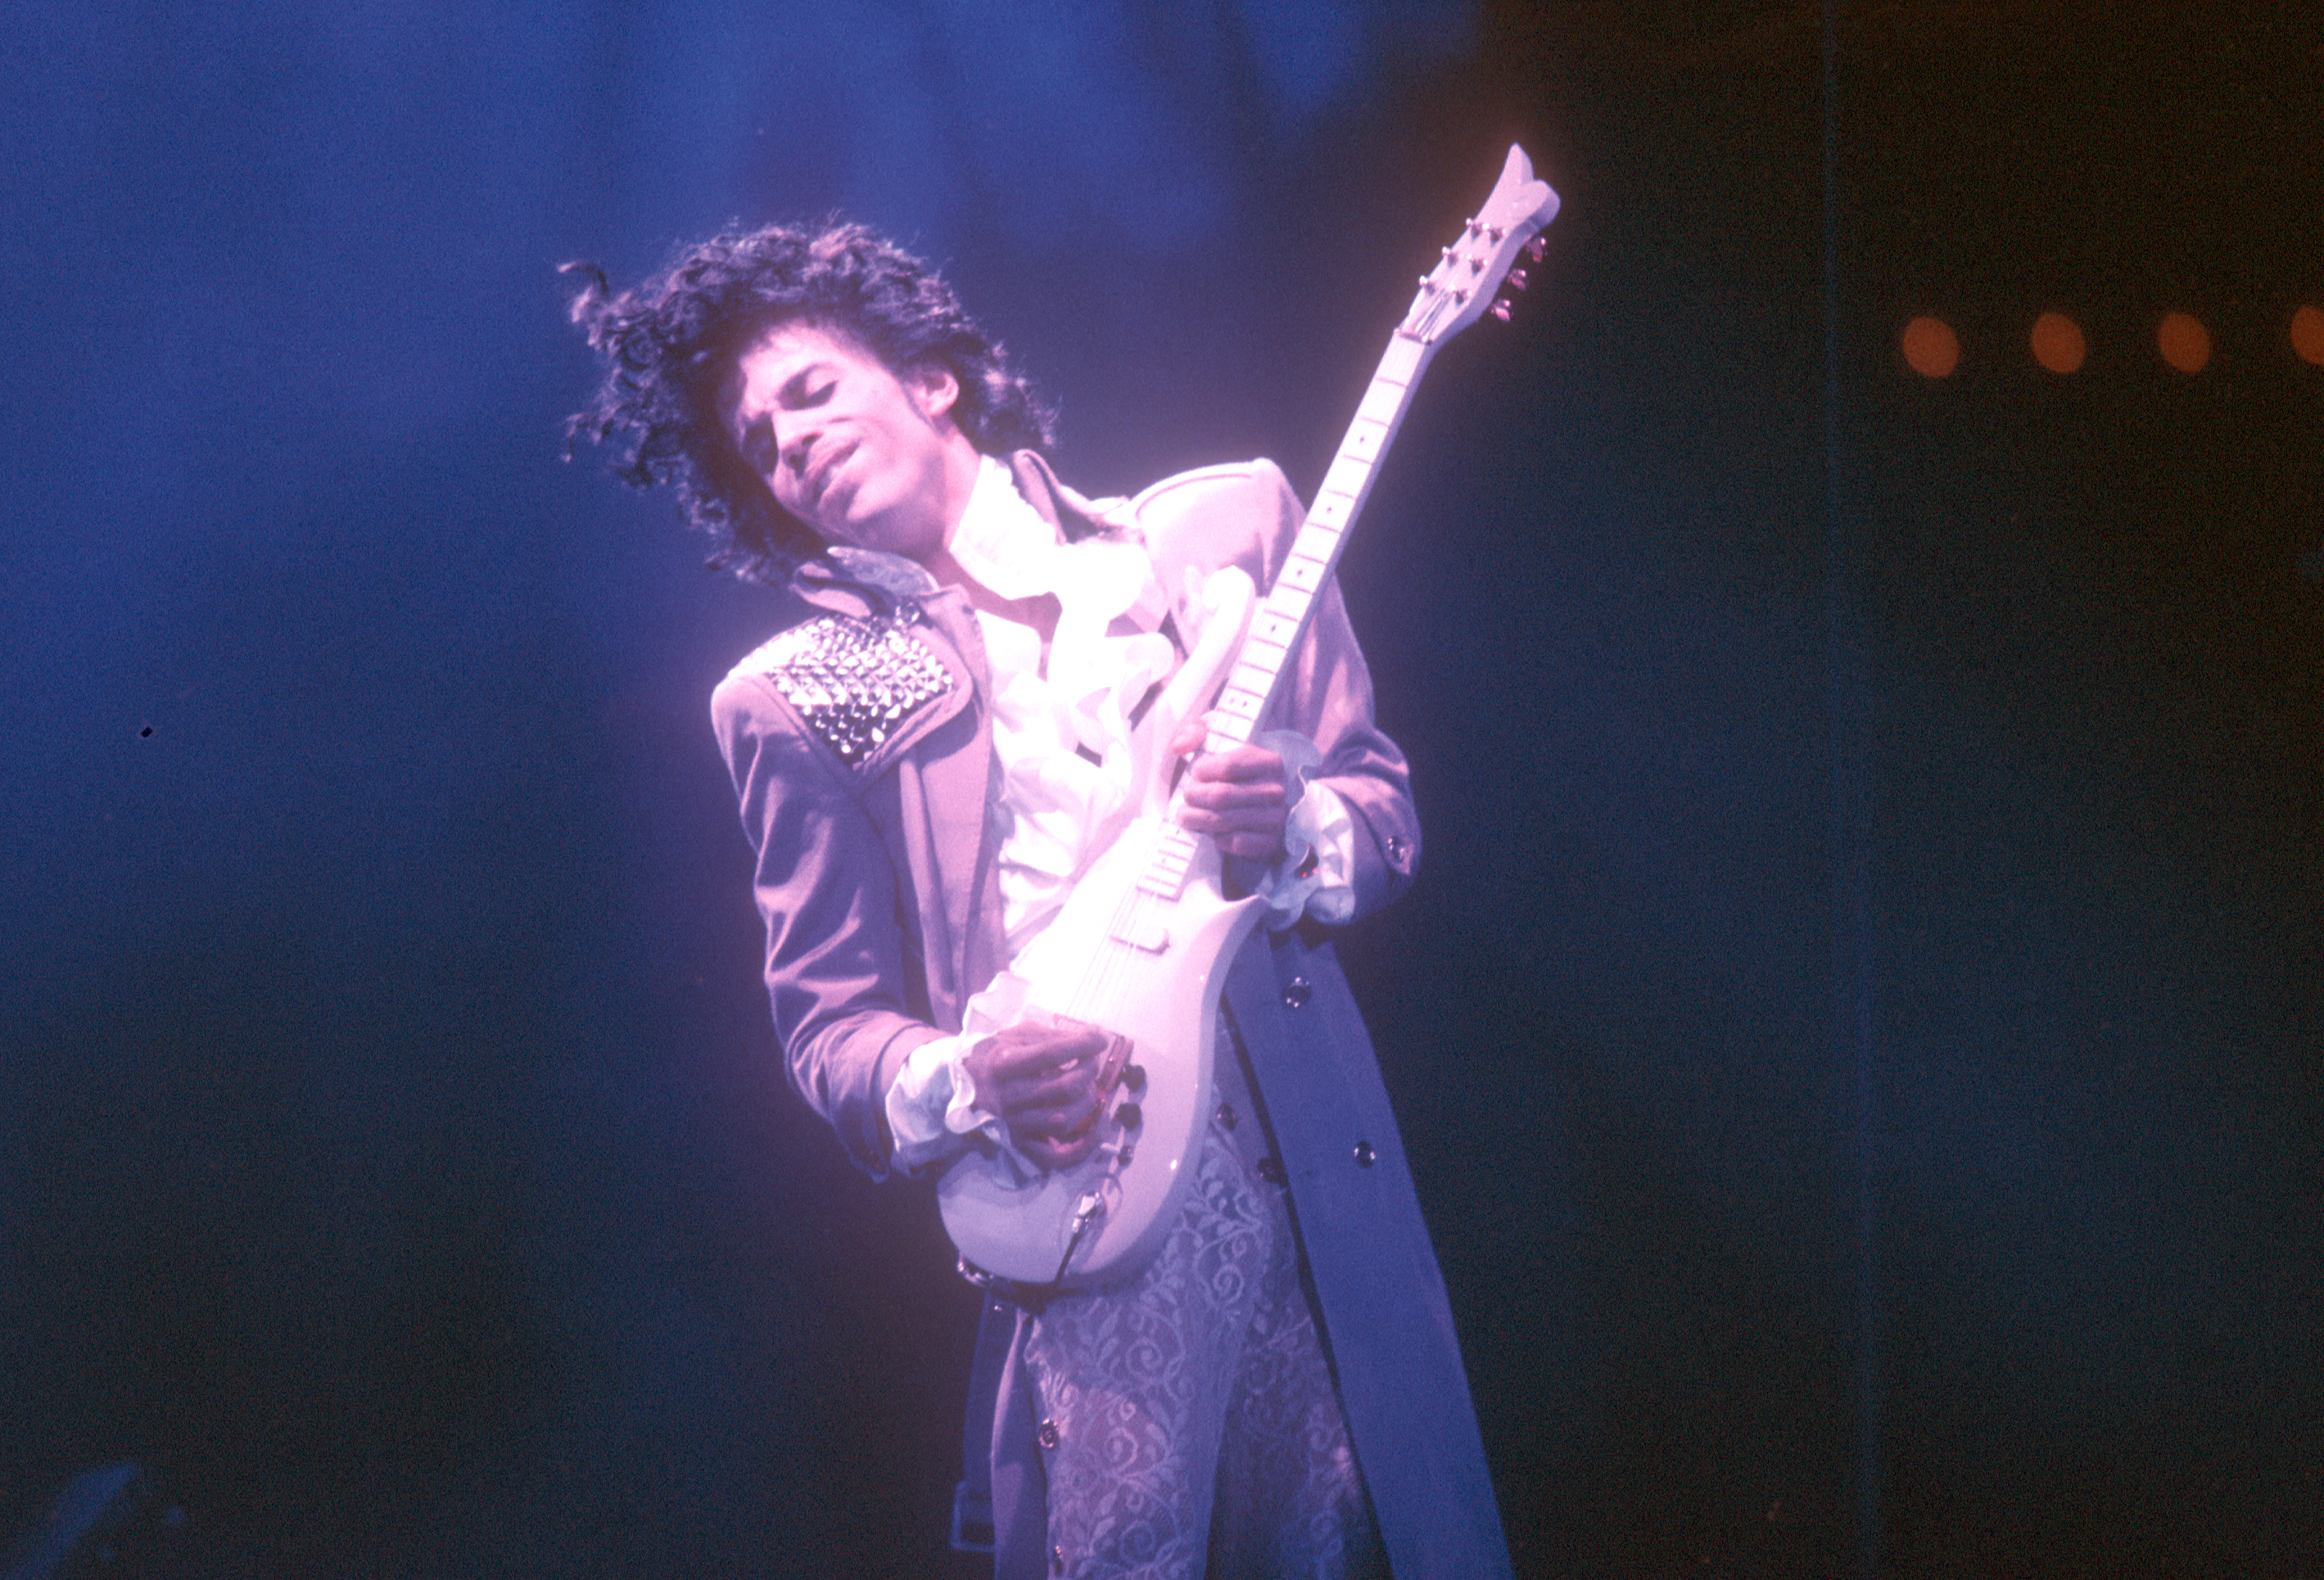 Prince He does a little singing, but Prince also plays a mean lead guitar. The solo on  Let's Go Crazy  is a frequently cited example of his frenetic style, but covers of  Just My Imagination  and  While My Guitar Gently Weeps  prove he can also play under control.